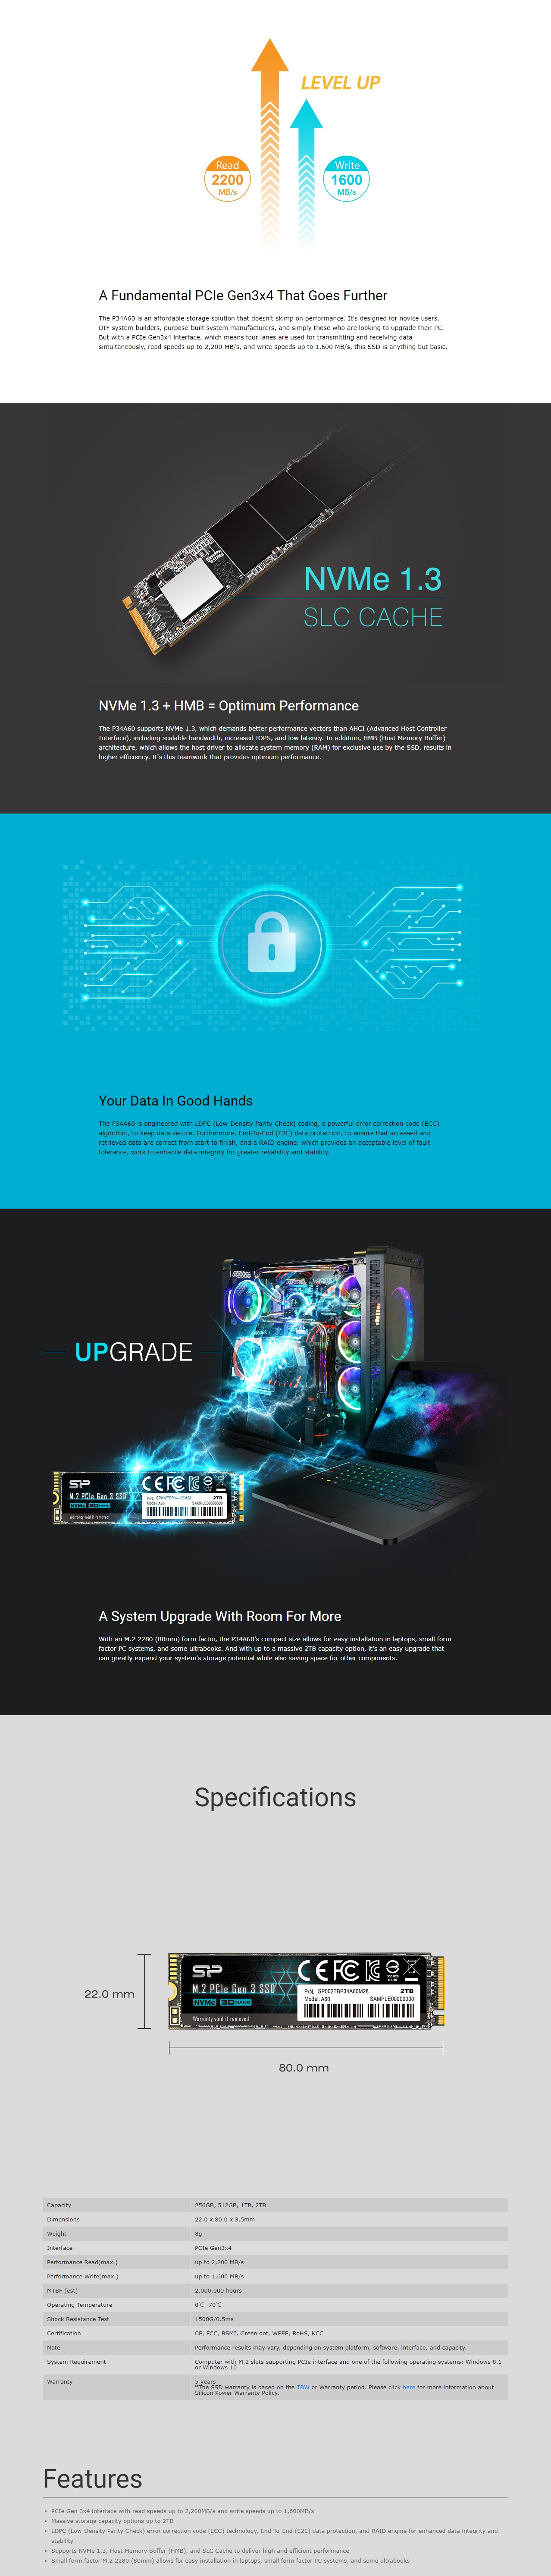 A large marketing image providing additional information about the product Silicon Power P34A60 256GB M.2 2280 PCIe SSD - Additional alt info not provided